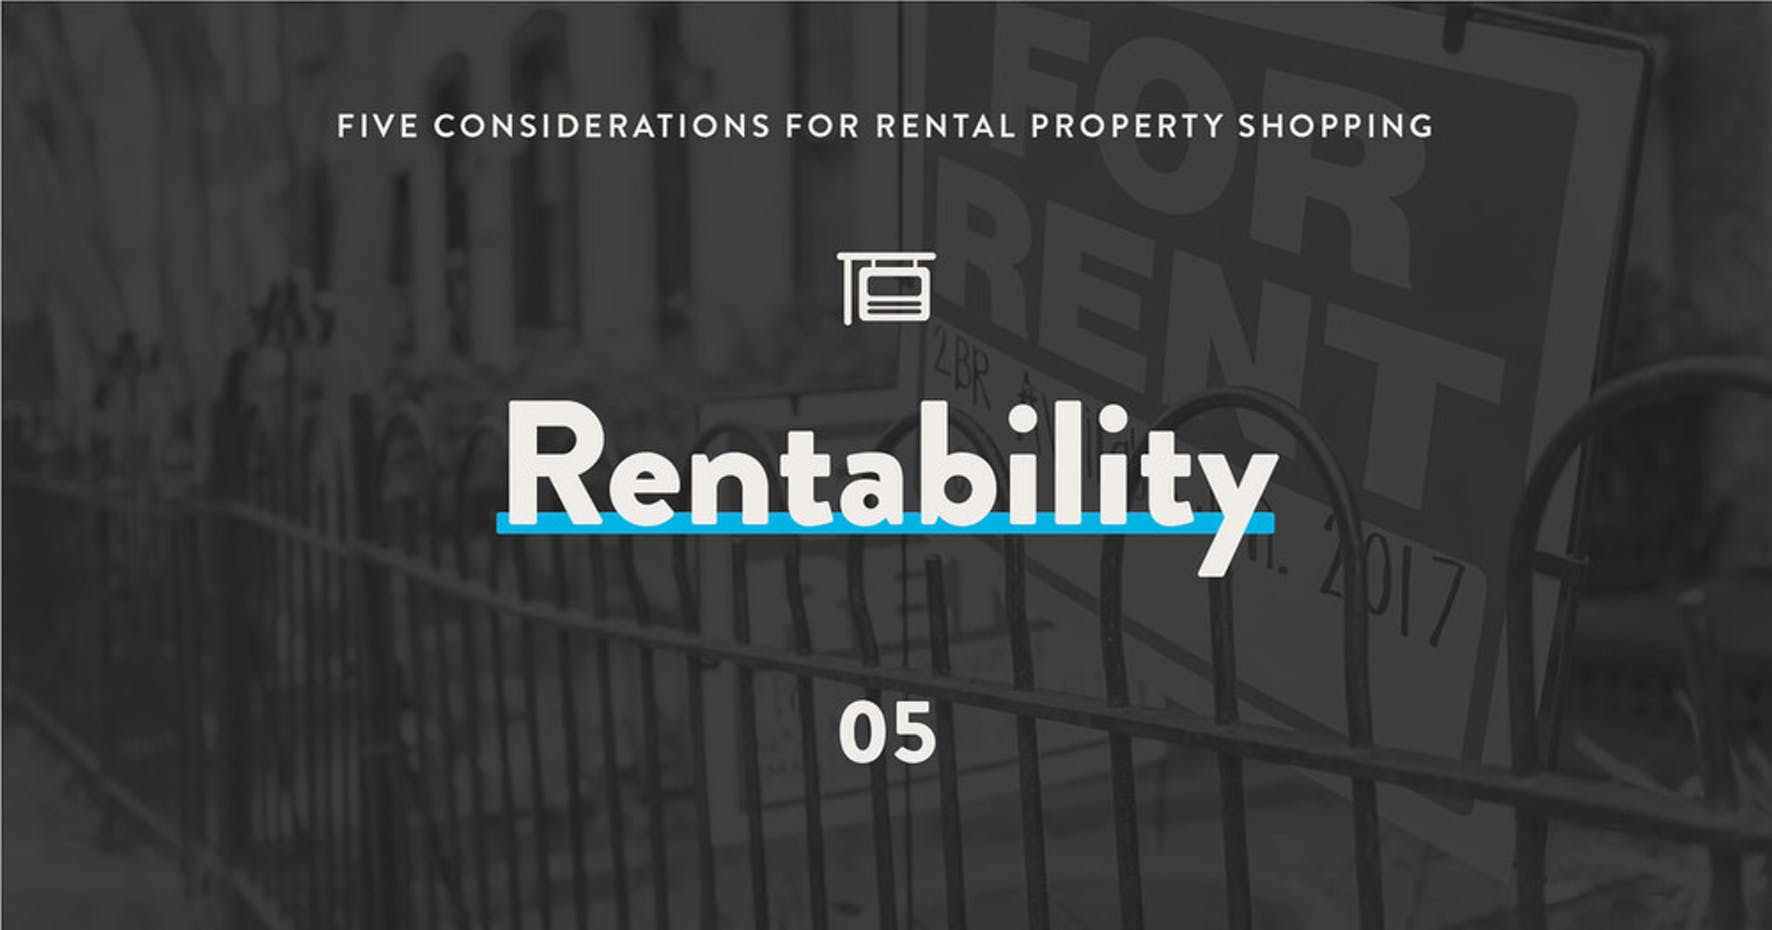 5 considerations for rental property shopping: 5 - Rentability